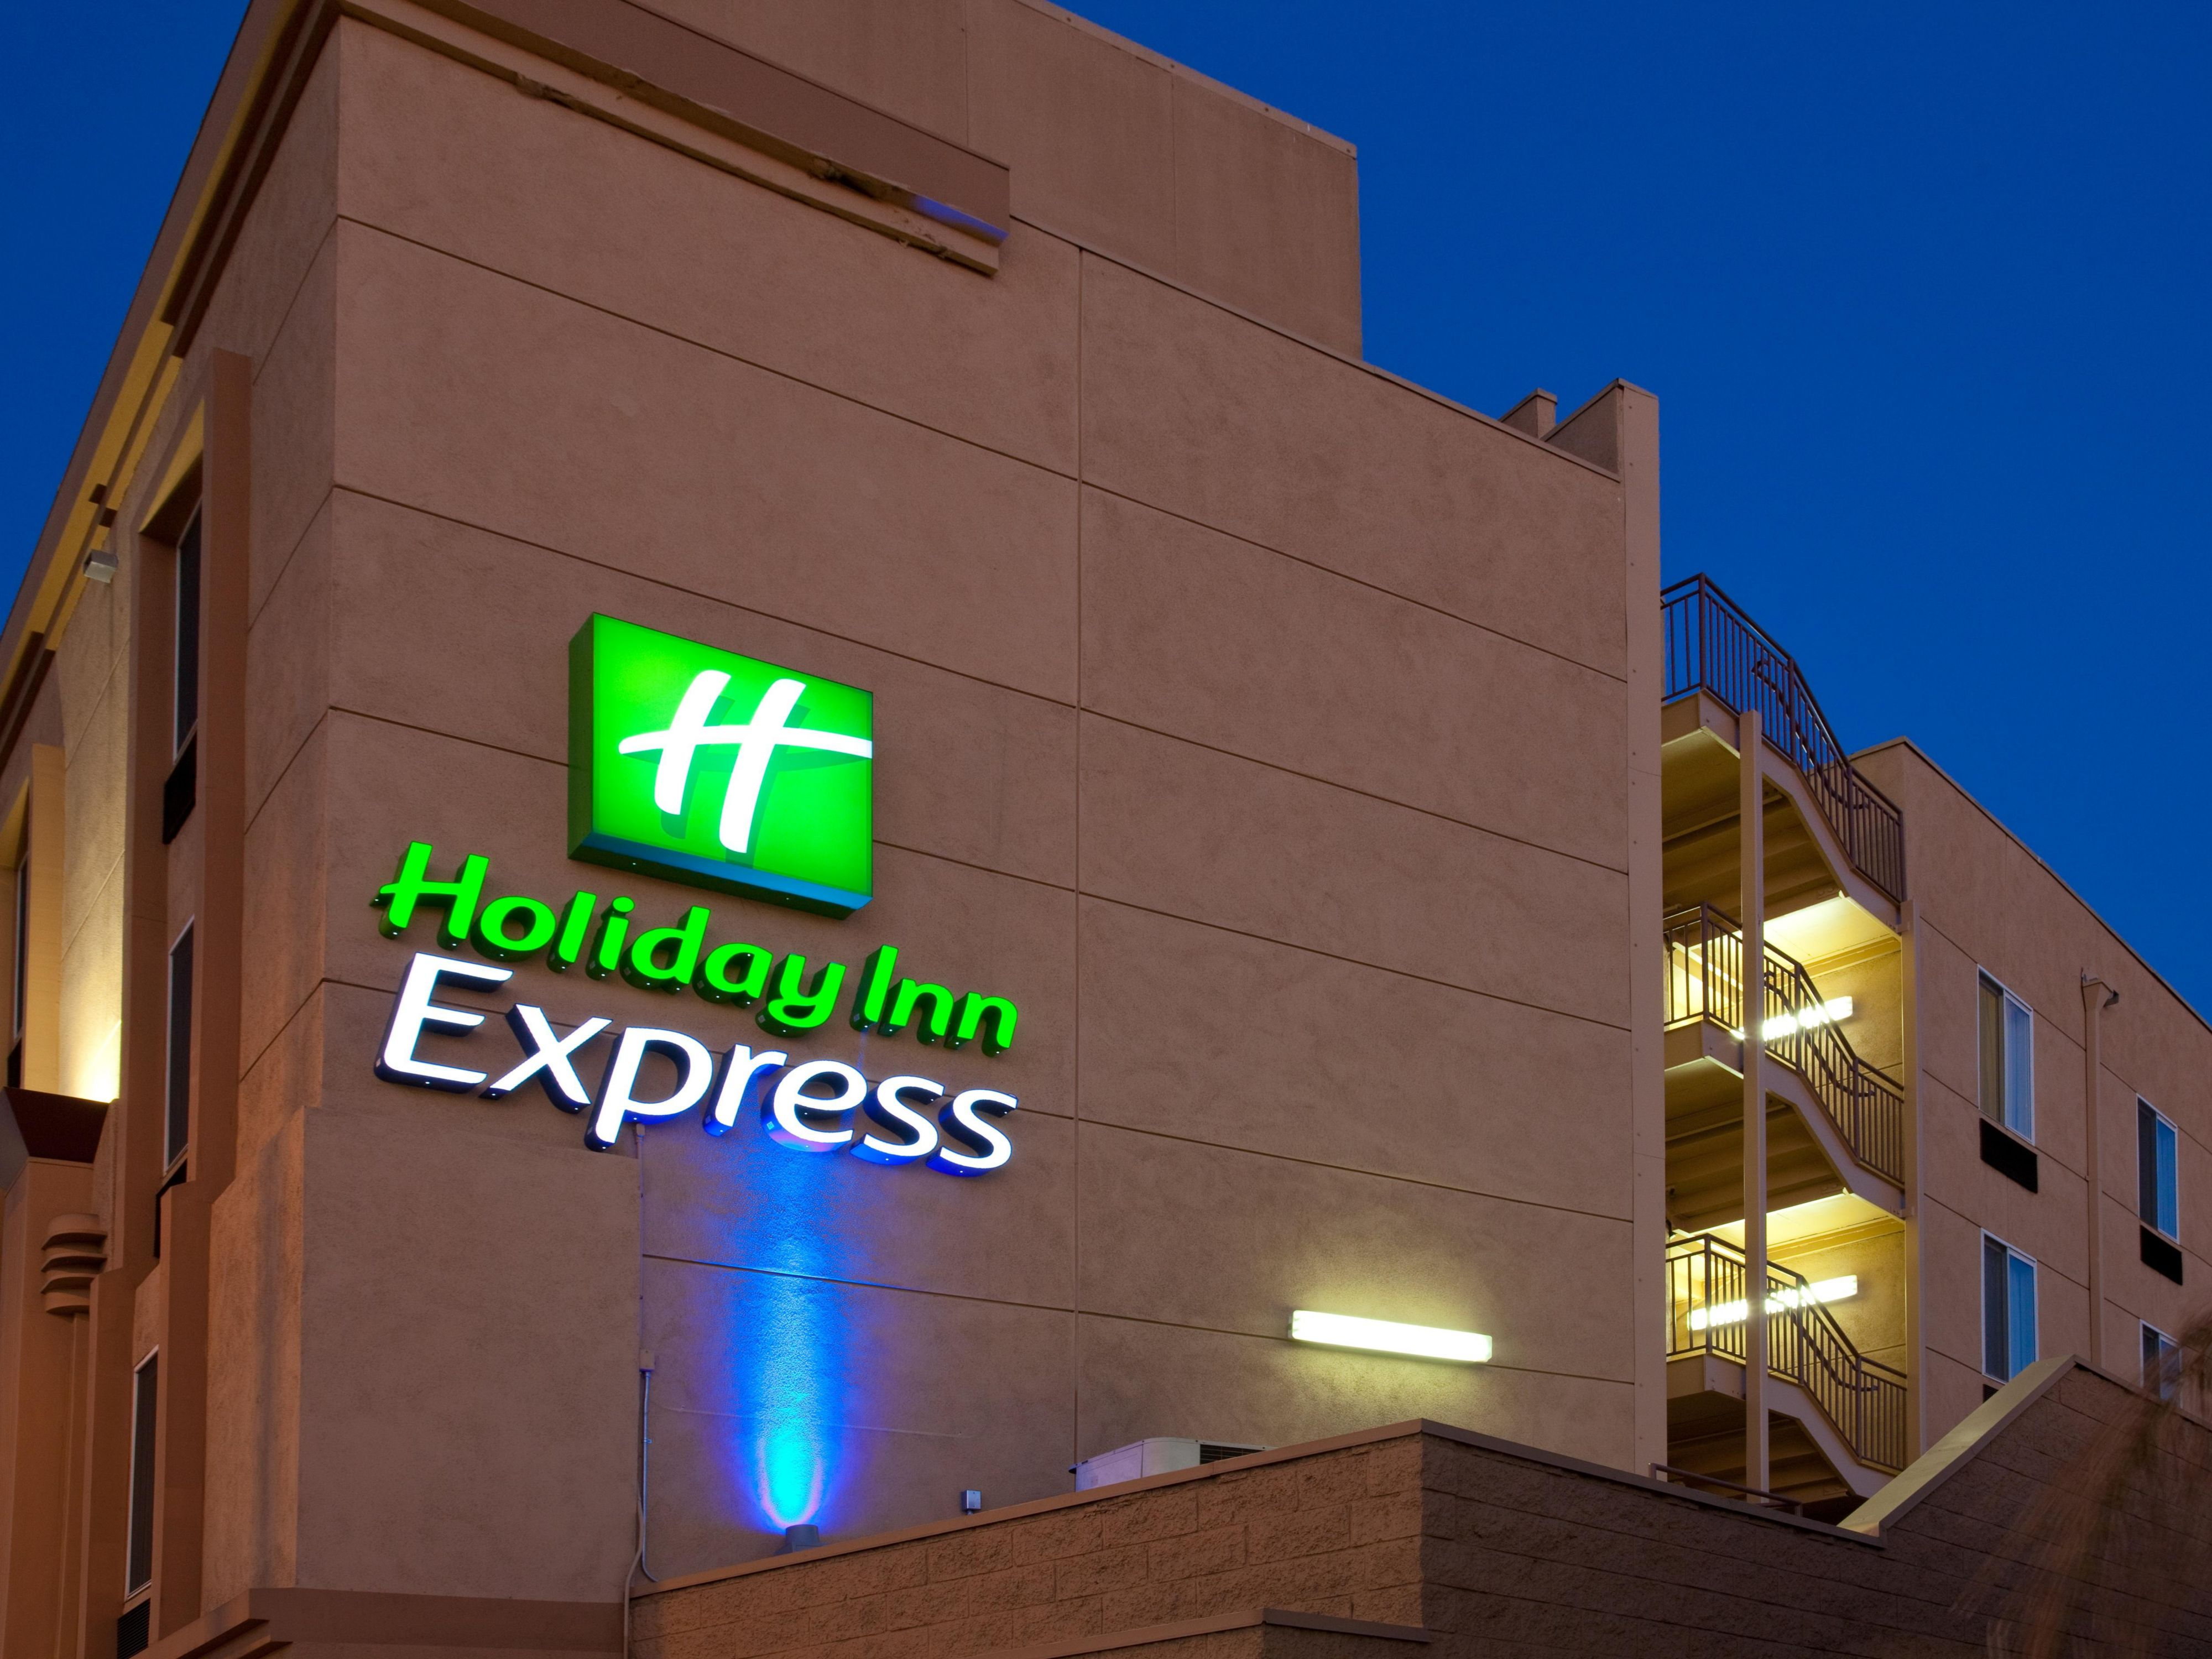 Holiday Inn Express West Los Angeles - Hotel Exterior